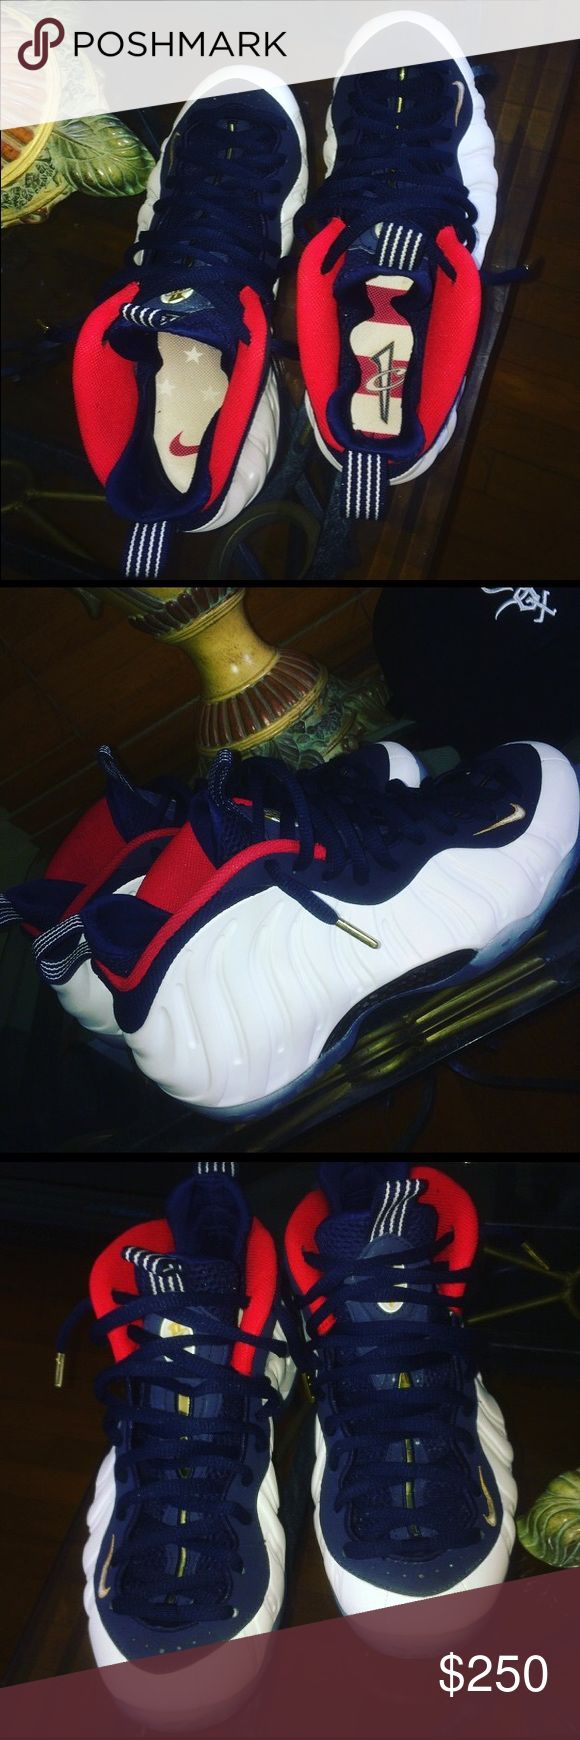 Nike foamposite white/navyblue/gold/red no box 9.5/10 condition worn 3x Nike Shoes Sneakers